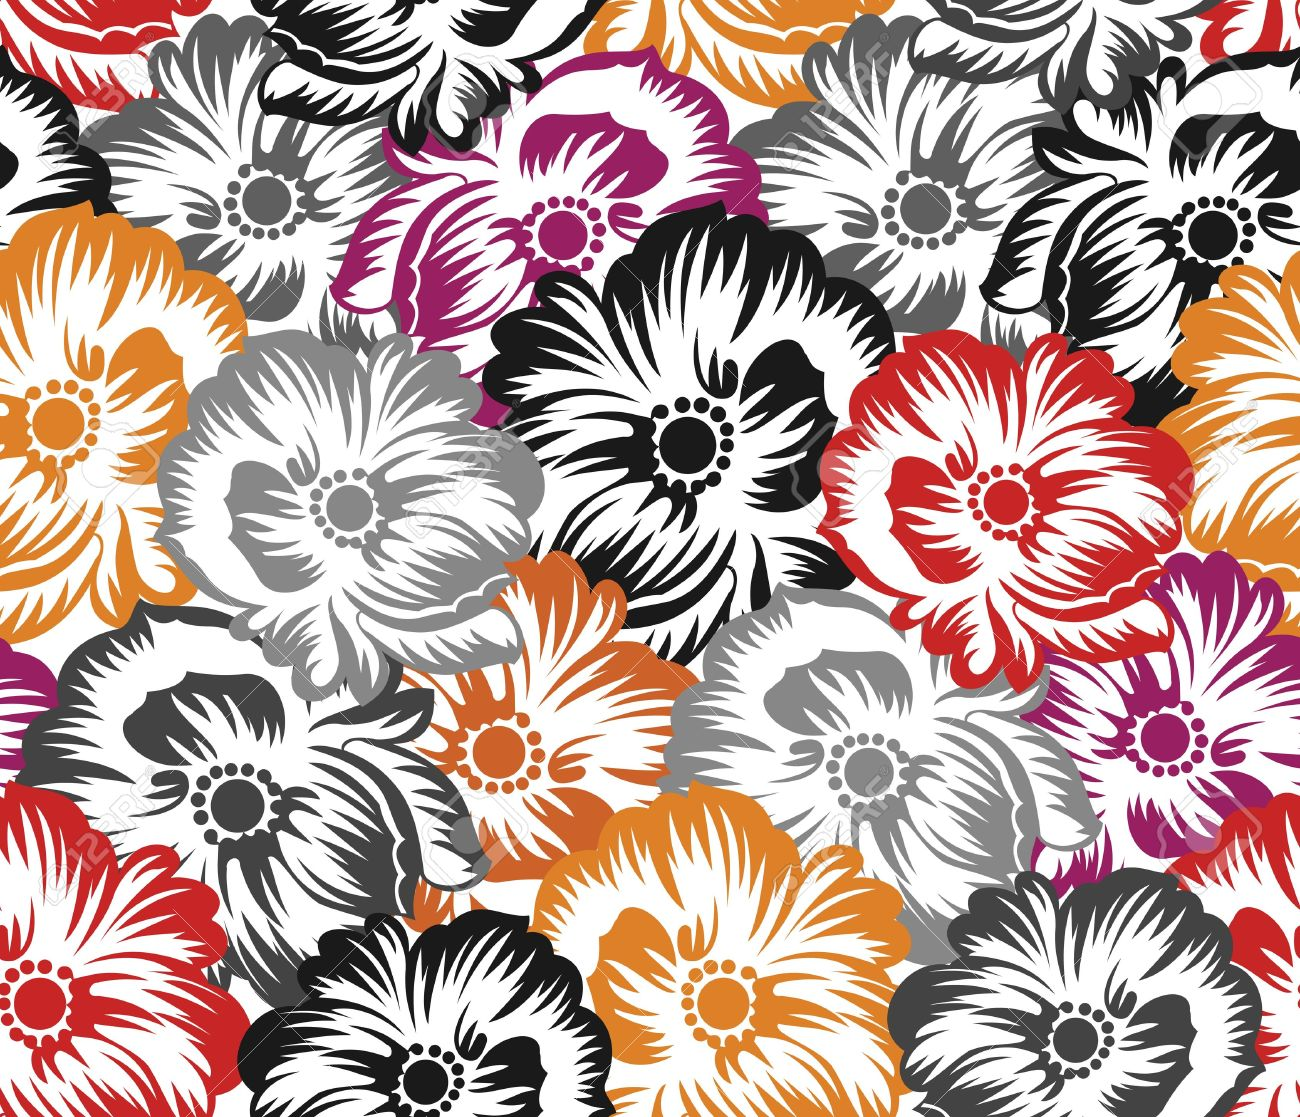 Bed sheet texture seamless - Seamless Floral Pattern Background Stock Vector 18437747